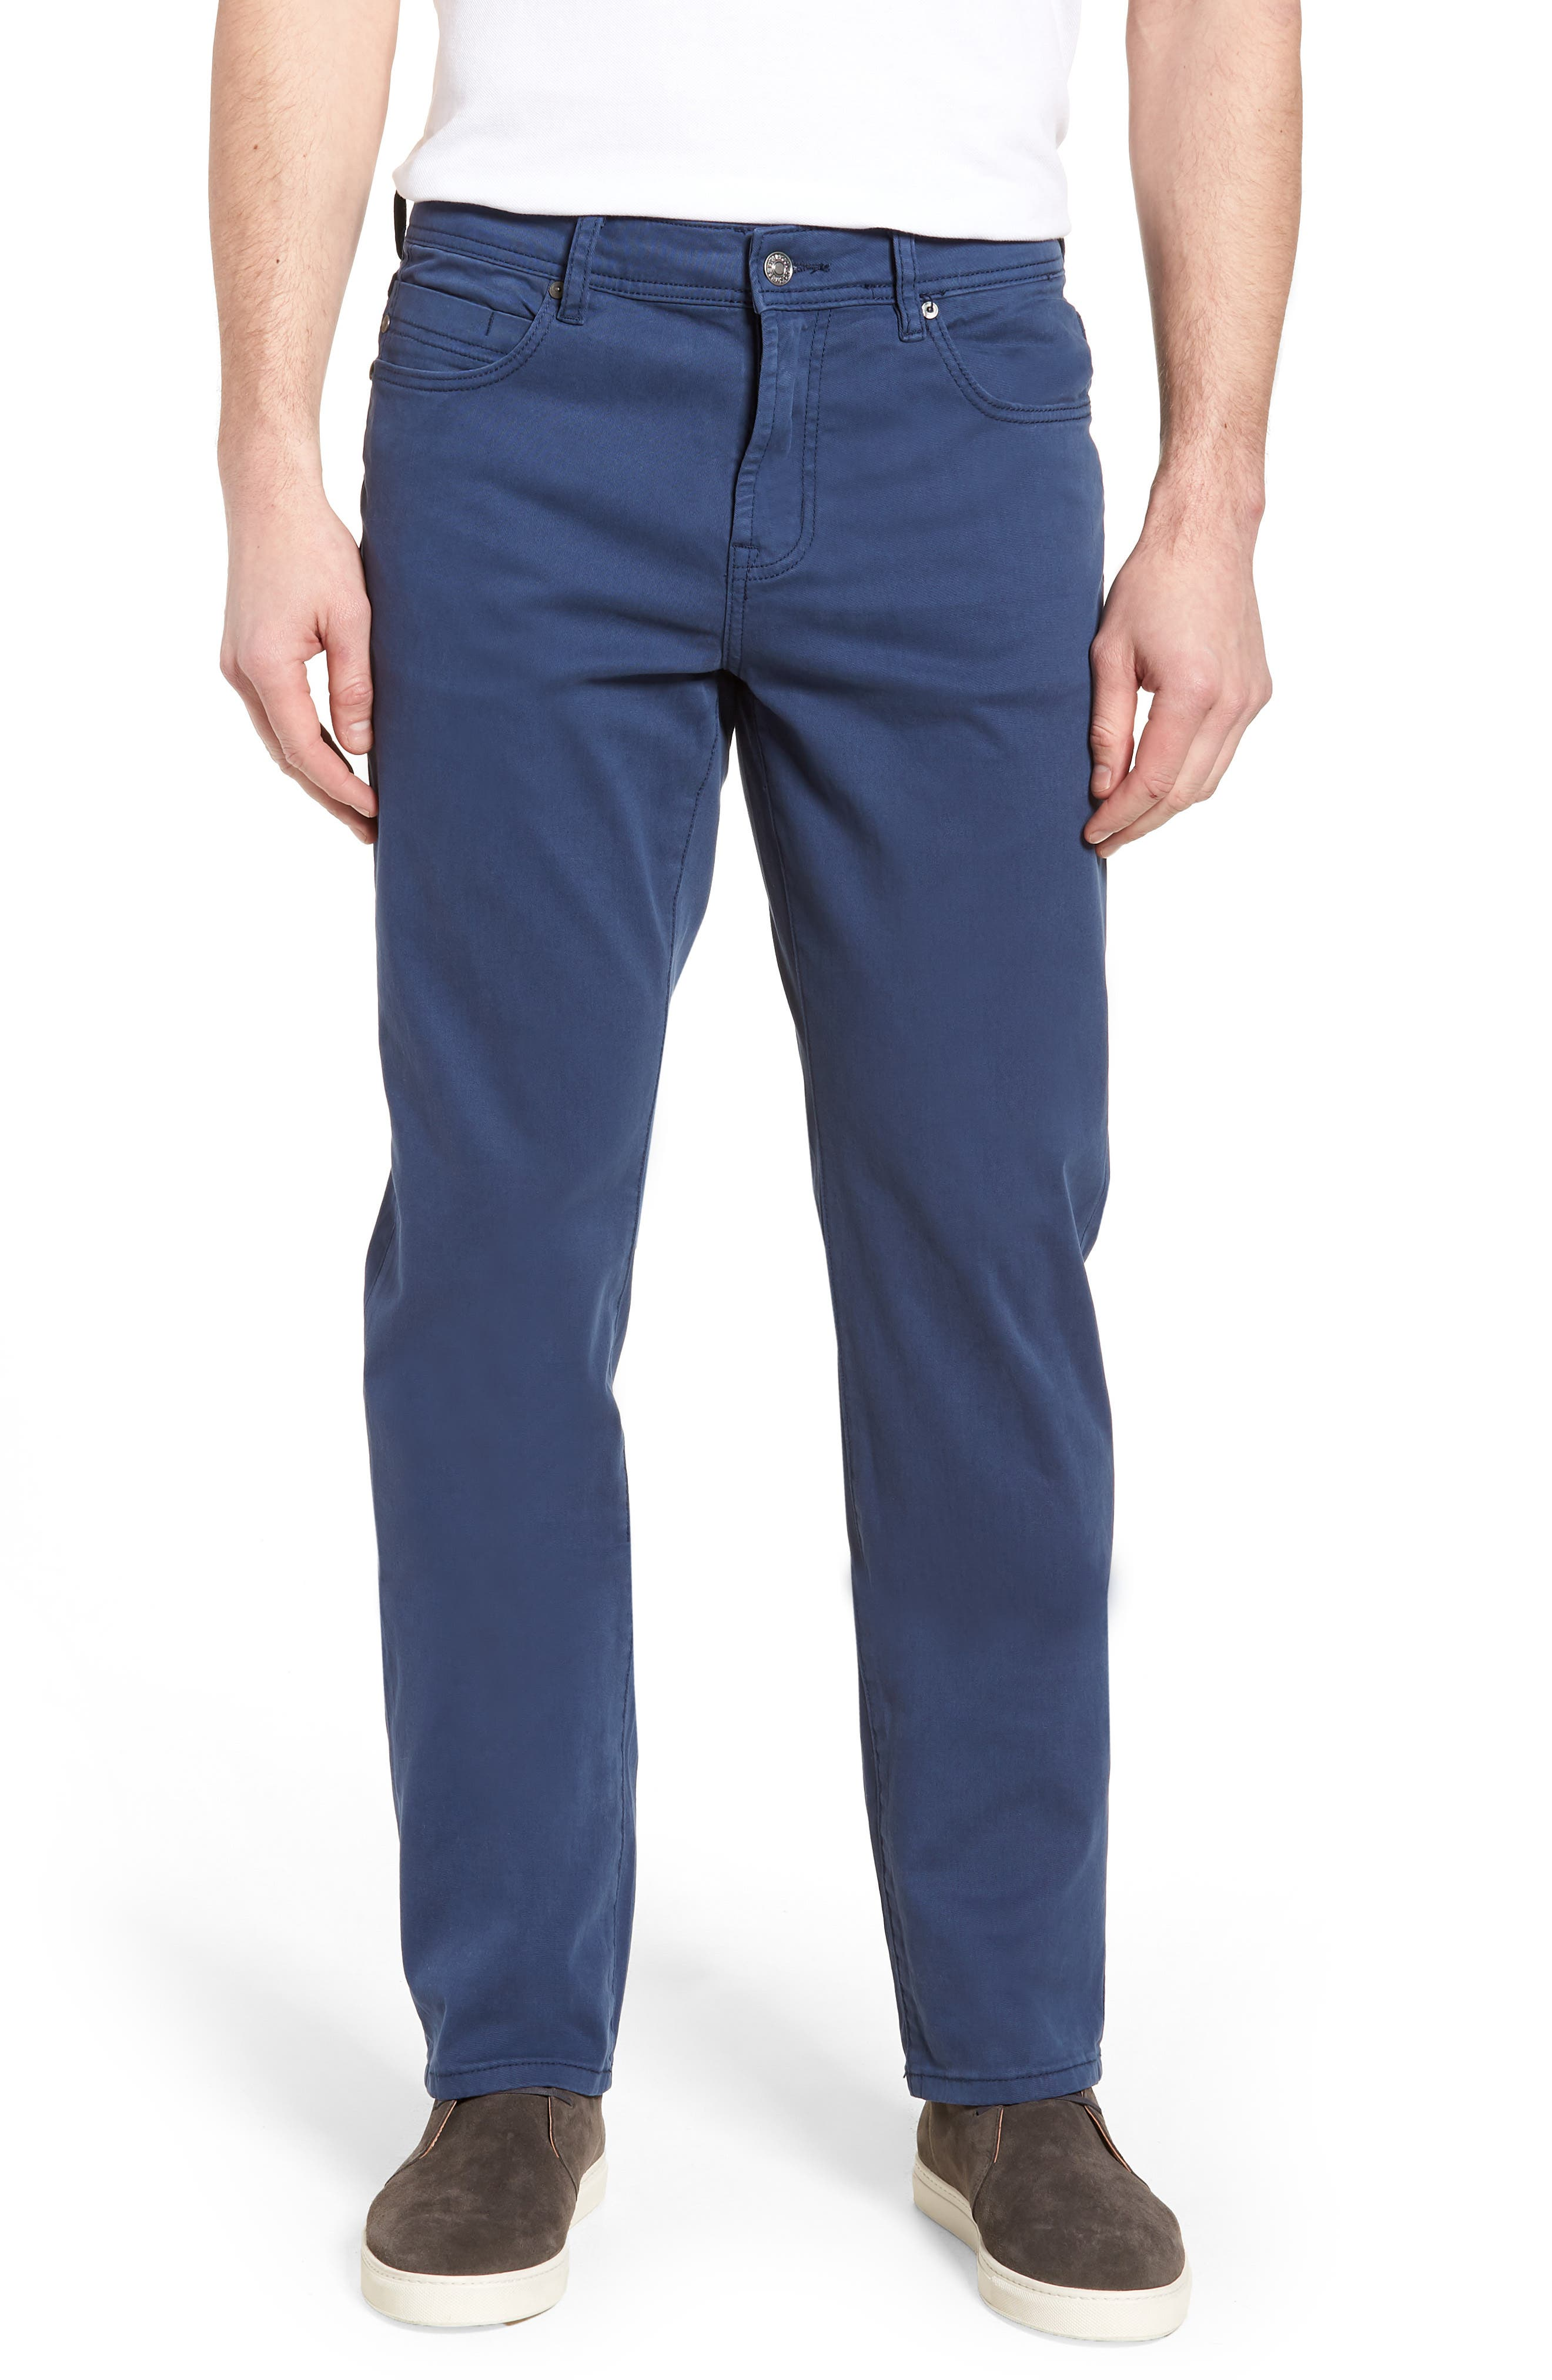 Jeans Co. Regent Relaxed Straight Leg Jeans,                         Main,                         color, Blue Twilight